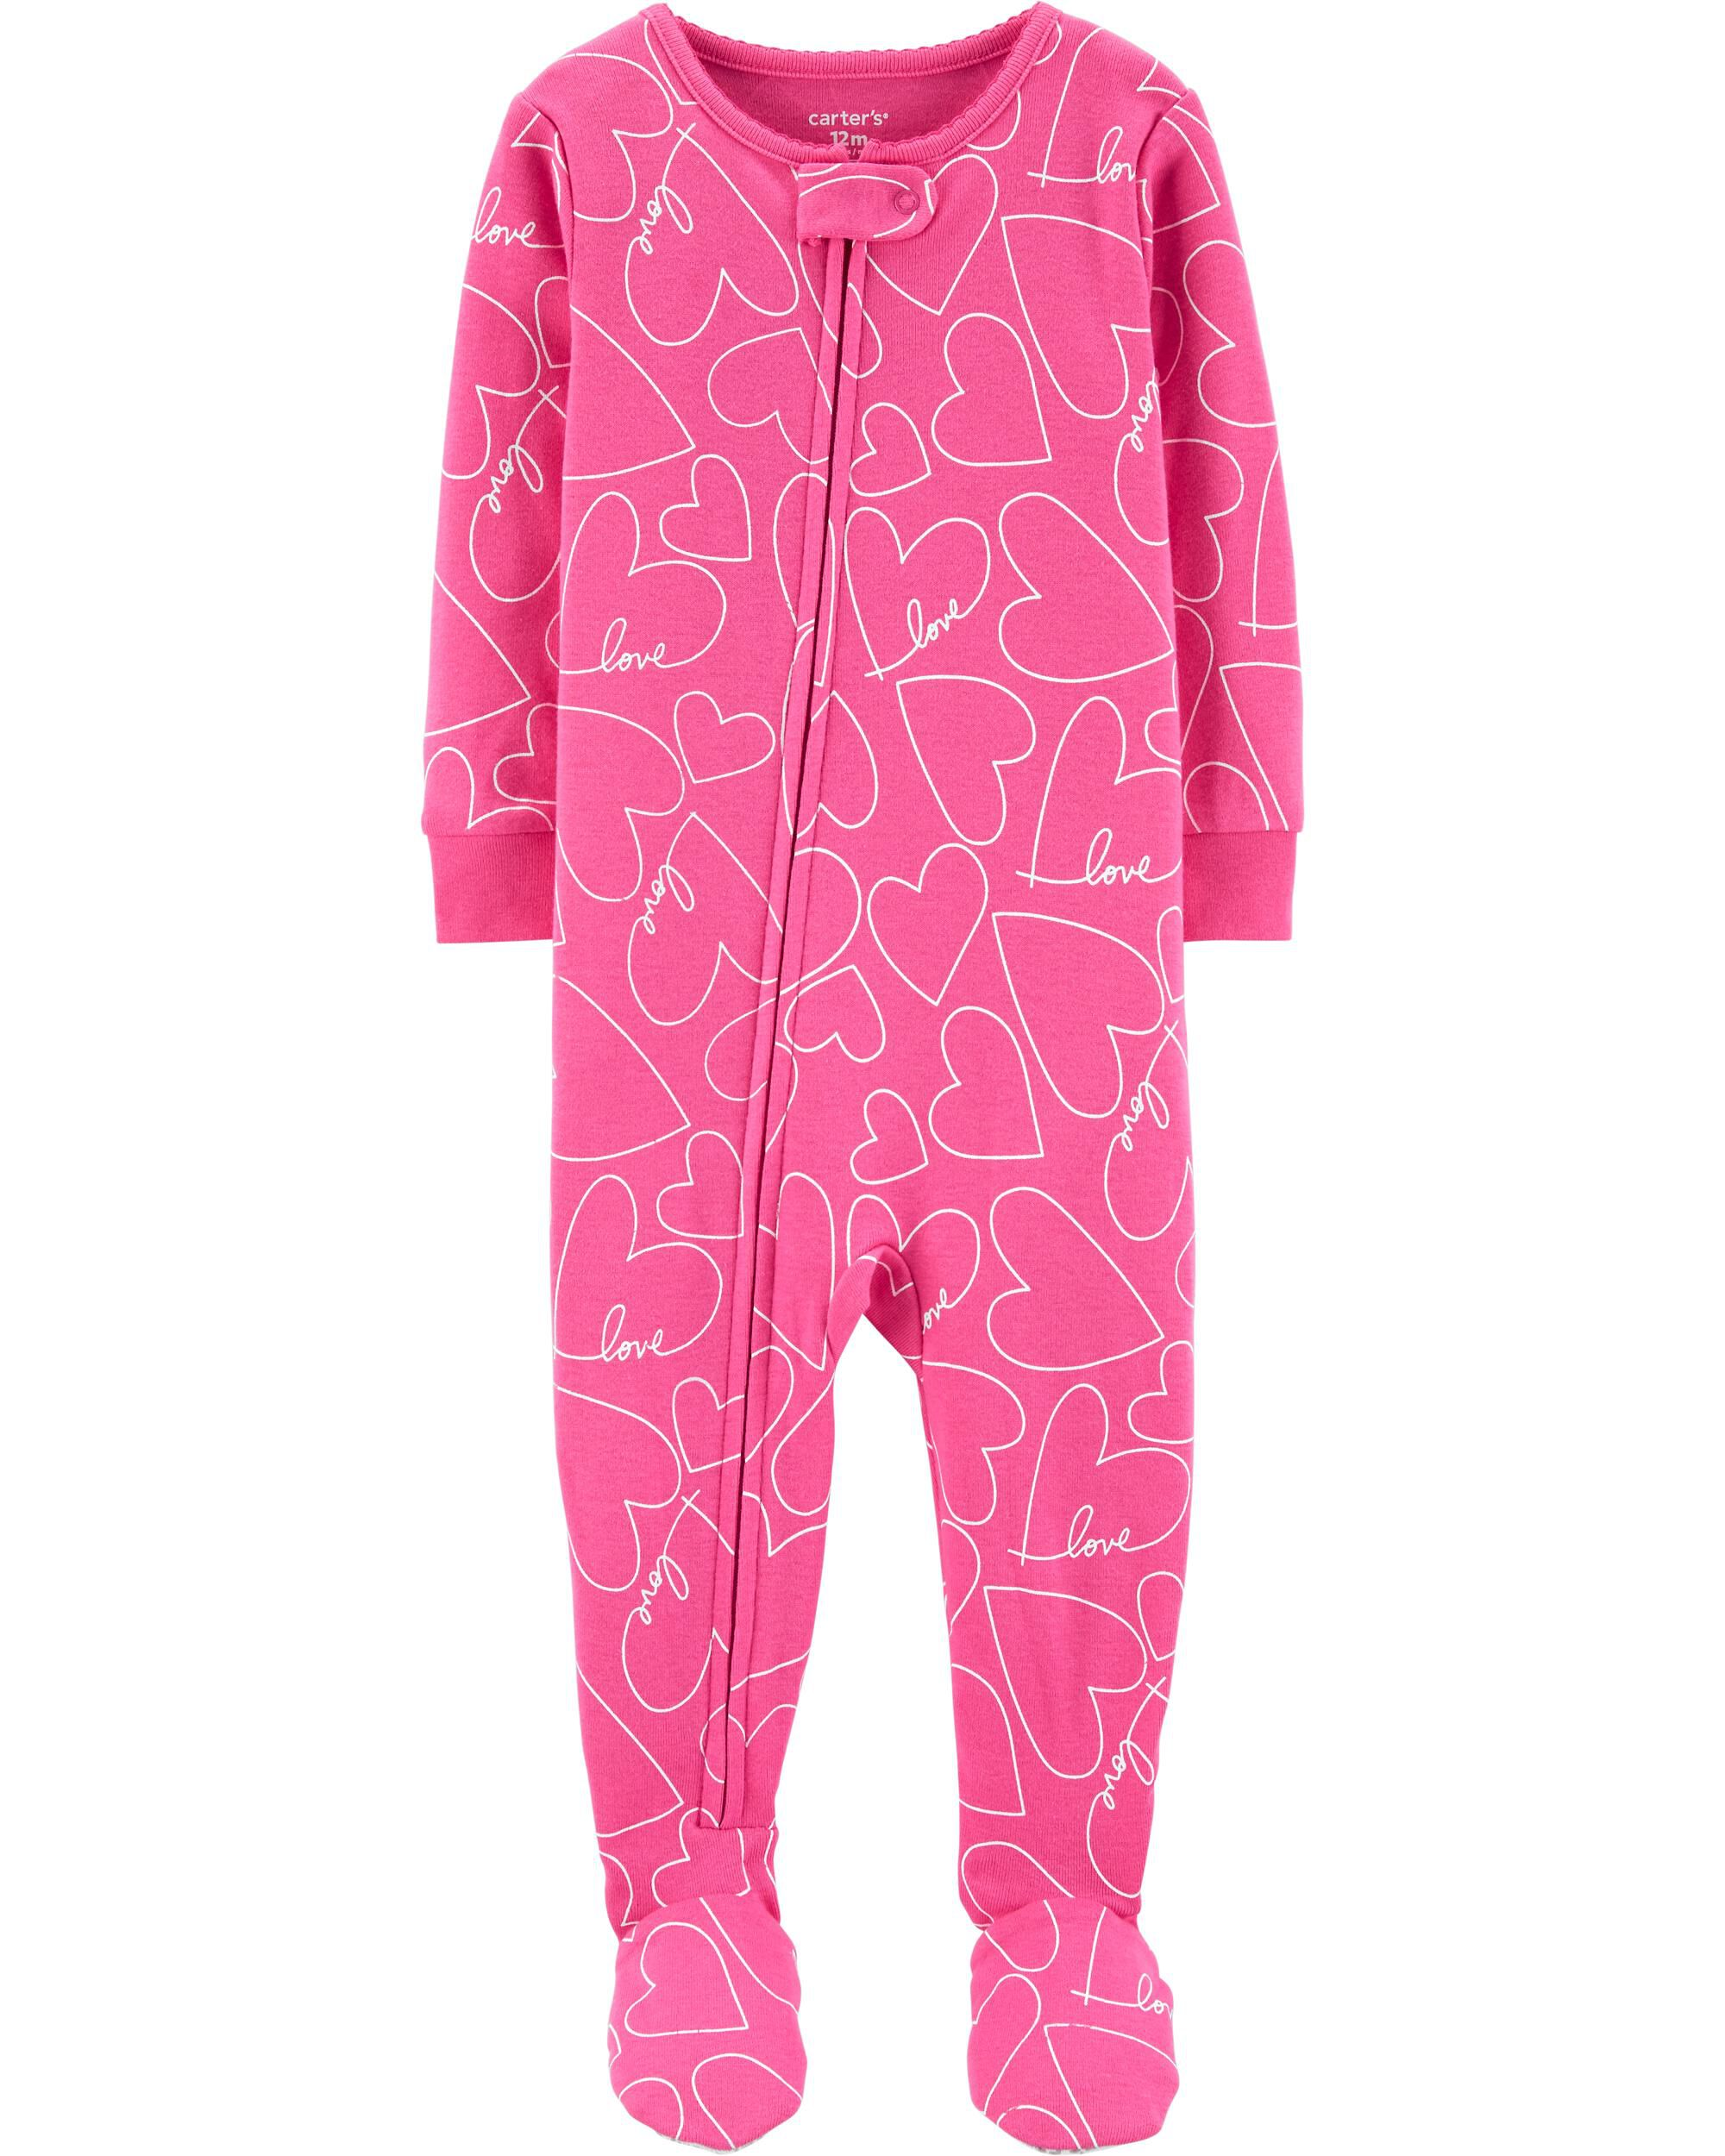 Baby & Toddler Clothing Responsible Girls Carters Fleece Zip Up Pink Footy Footed Pajamas Pjs Sleeper 3t One Piece Excellent Quality